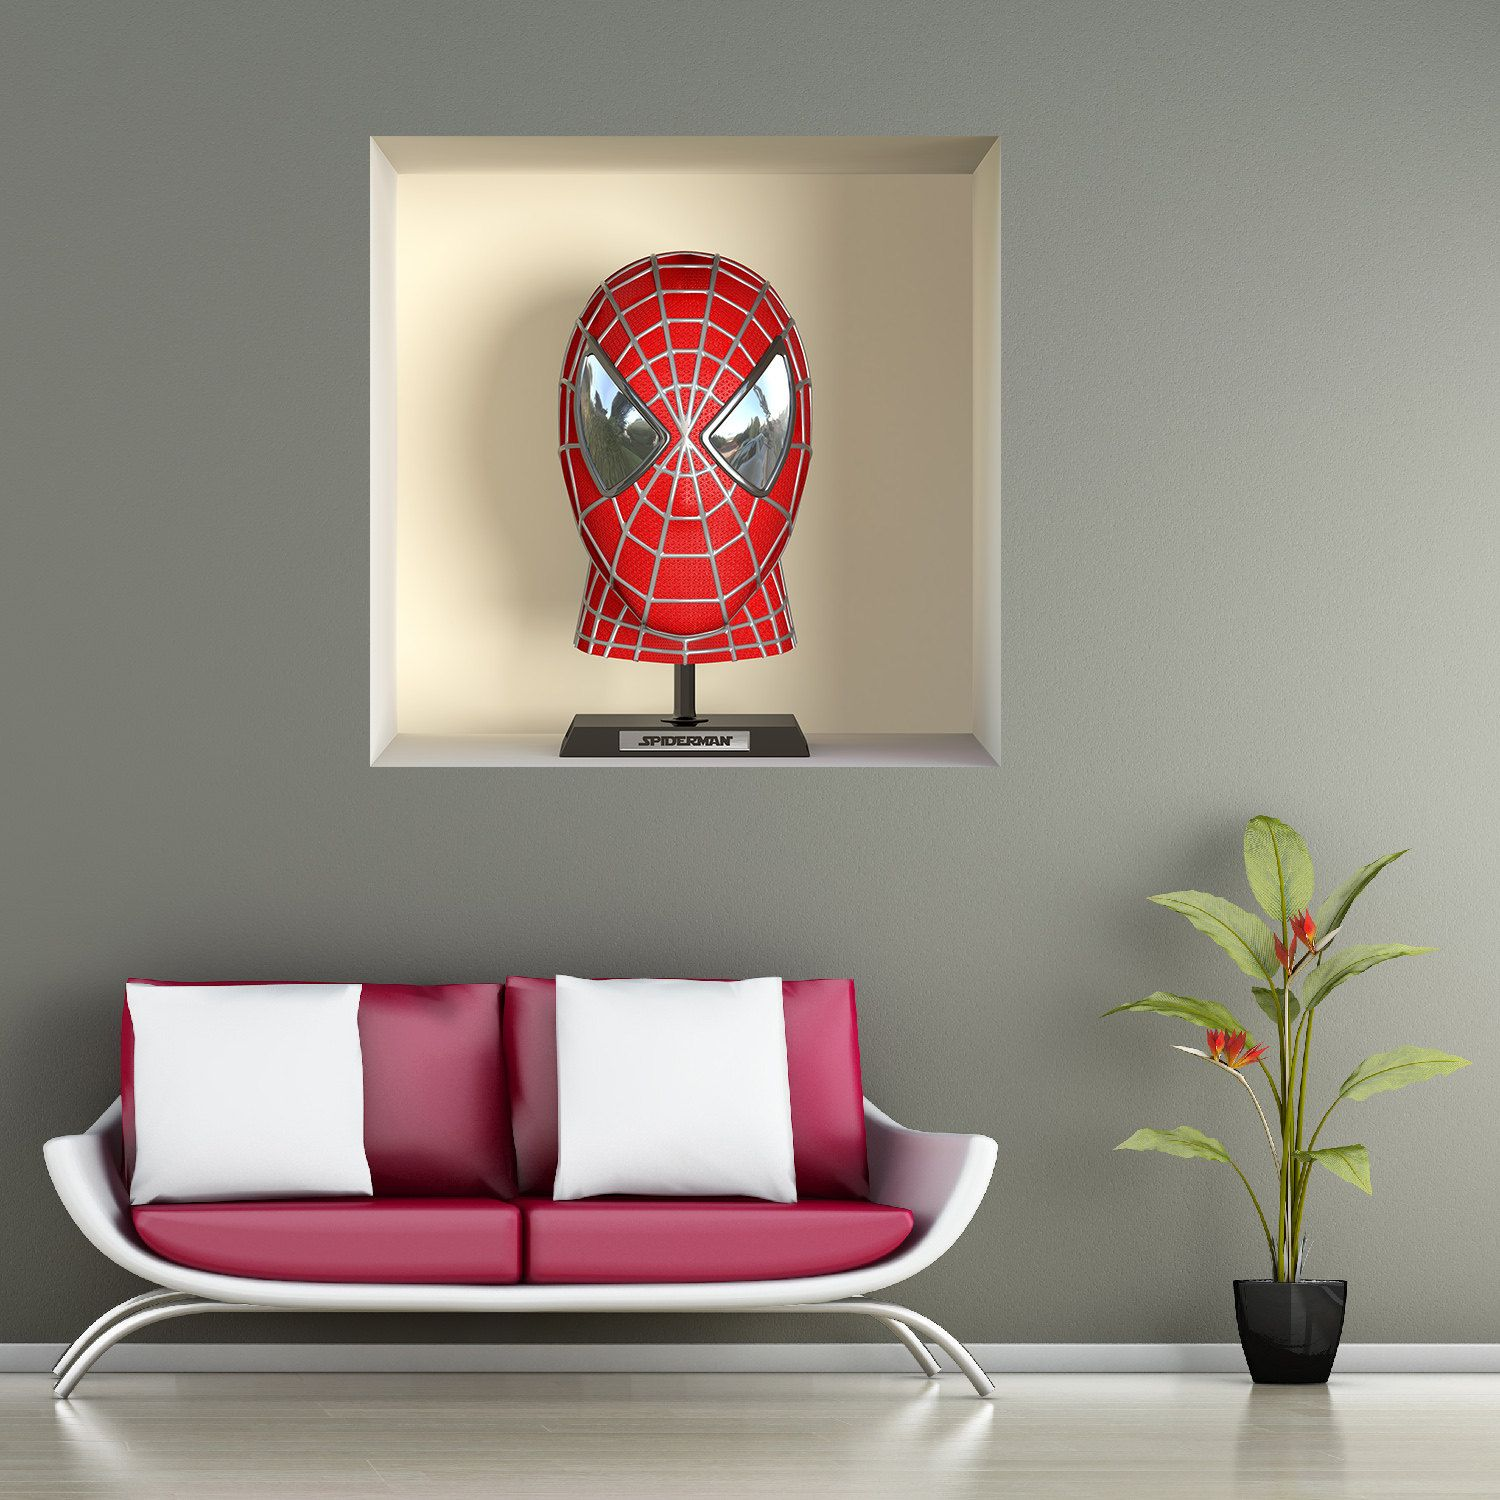 Wall decals 3d illusion spiderman a466 stickers 3d illusion stickers 3d illusion spiderman a466 wall decals 3d illusion spiderman a466 de la boutique funnywallstickers amipublicfo Choice Image